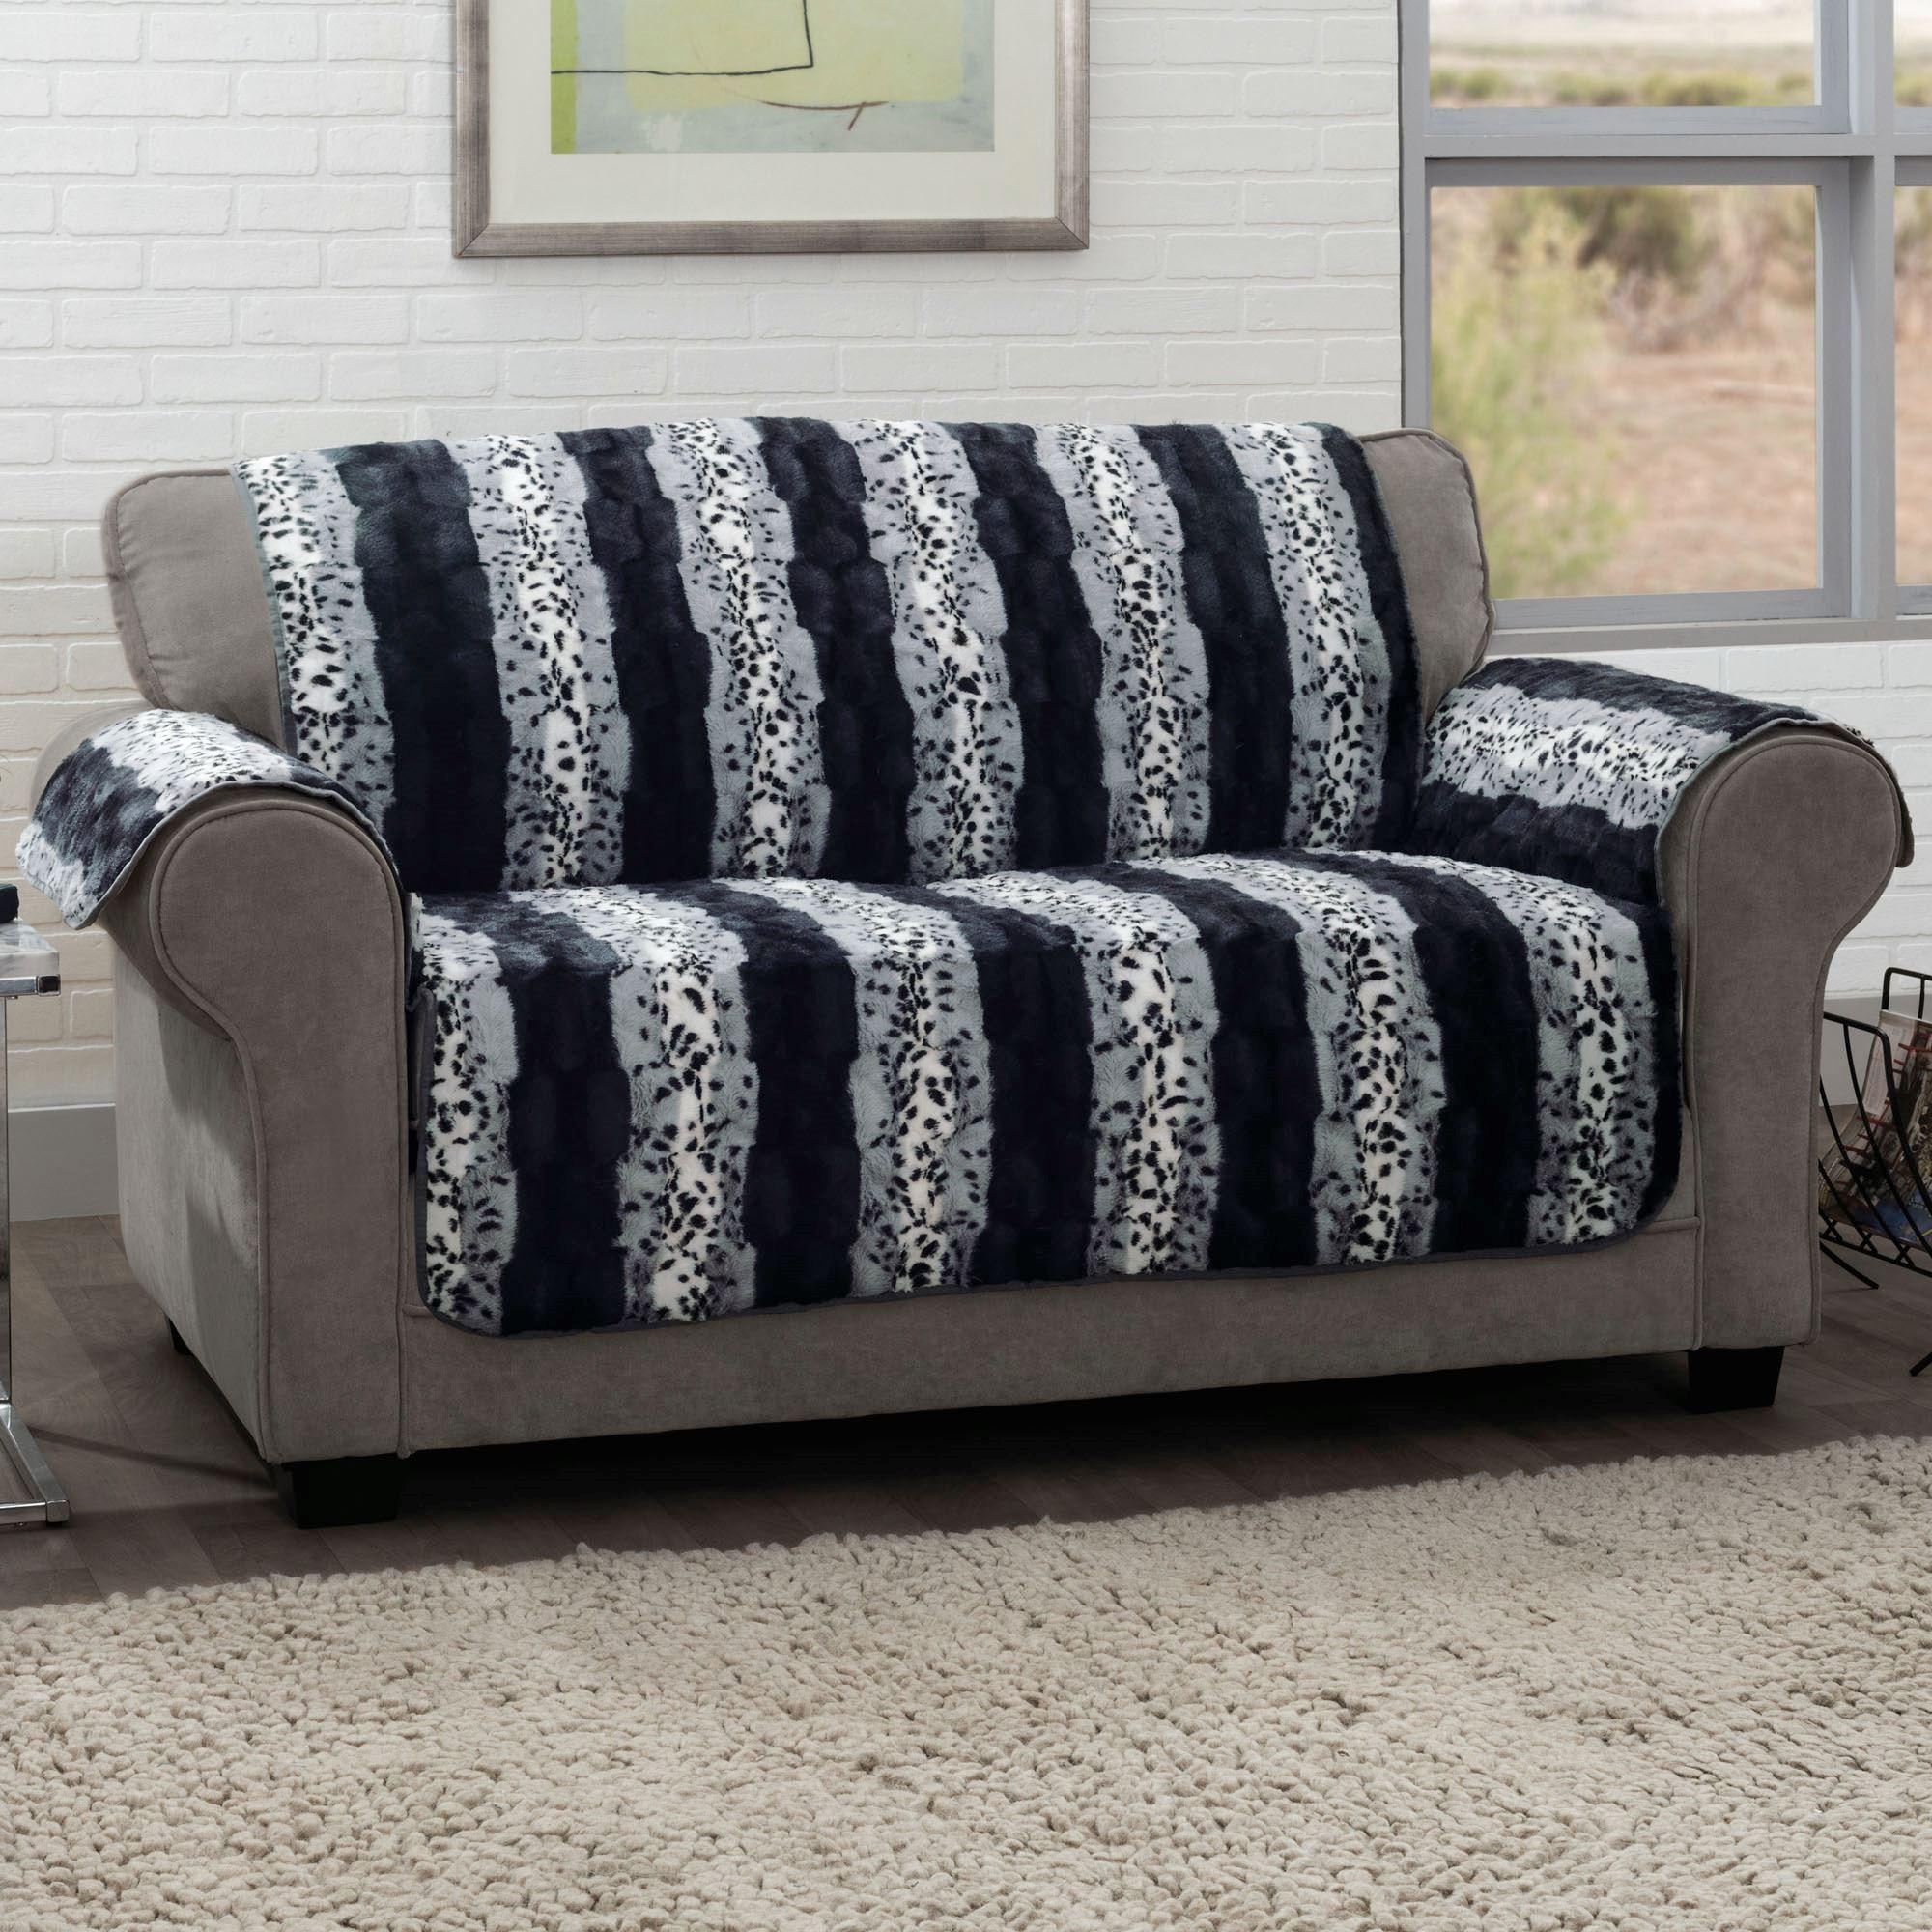 Prowl Black Faux Fur Animal Print Furniture Protectors For Animal Print Sofas (View 10 of 20)